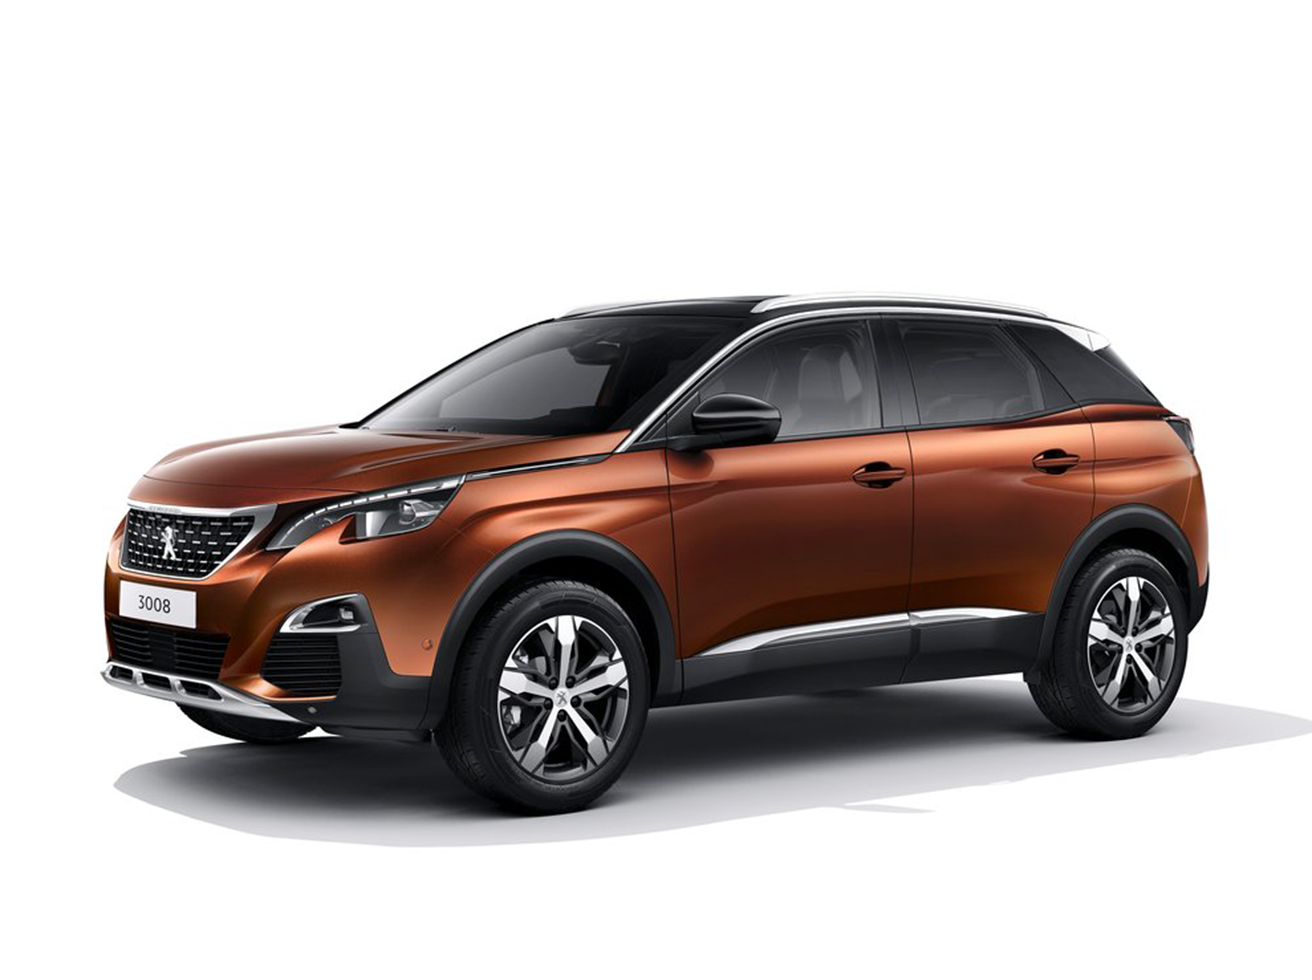 PEUGEOT - 3008 - 1.6 GRIFFE PACK THP 16V GASOLINA 4P AUTOMÁTICO